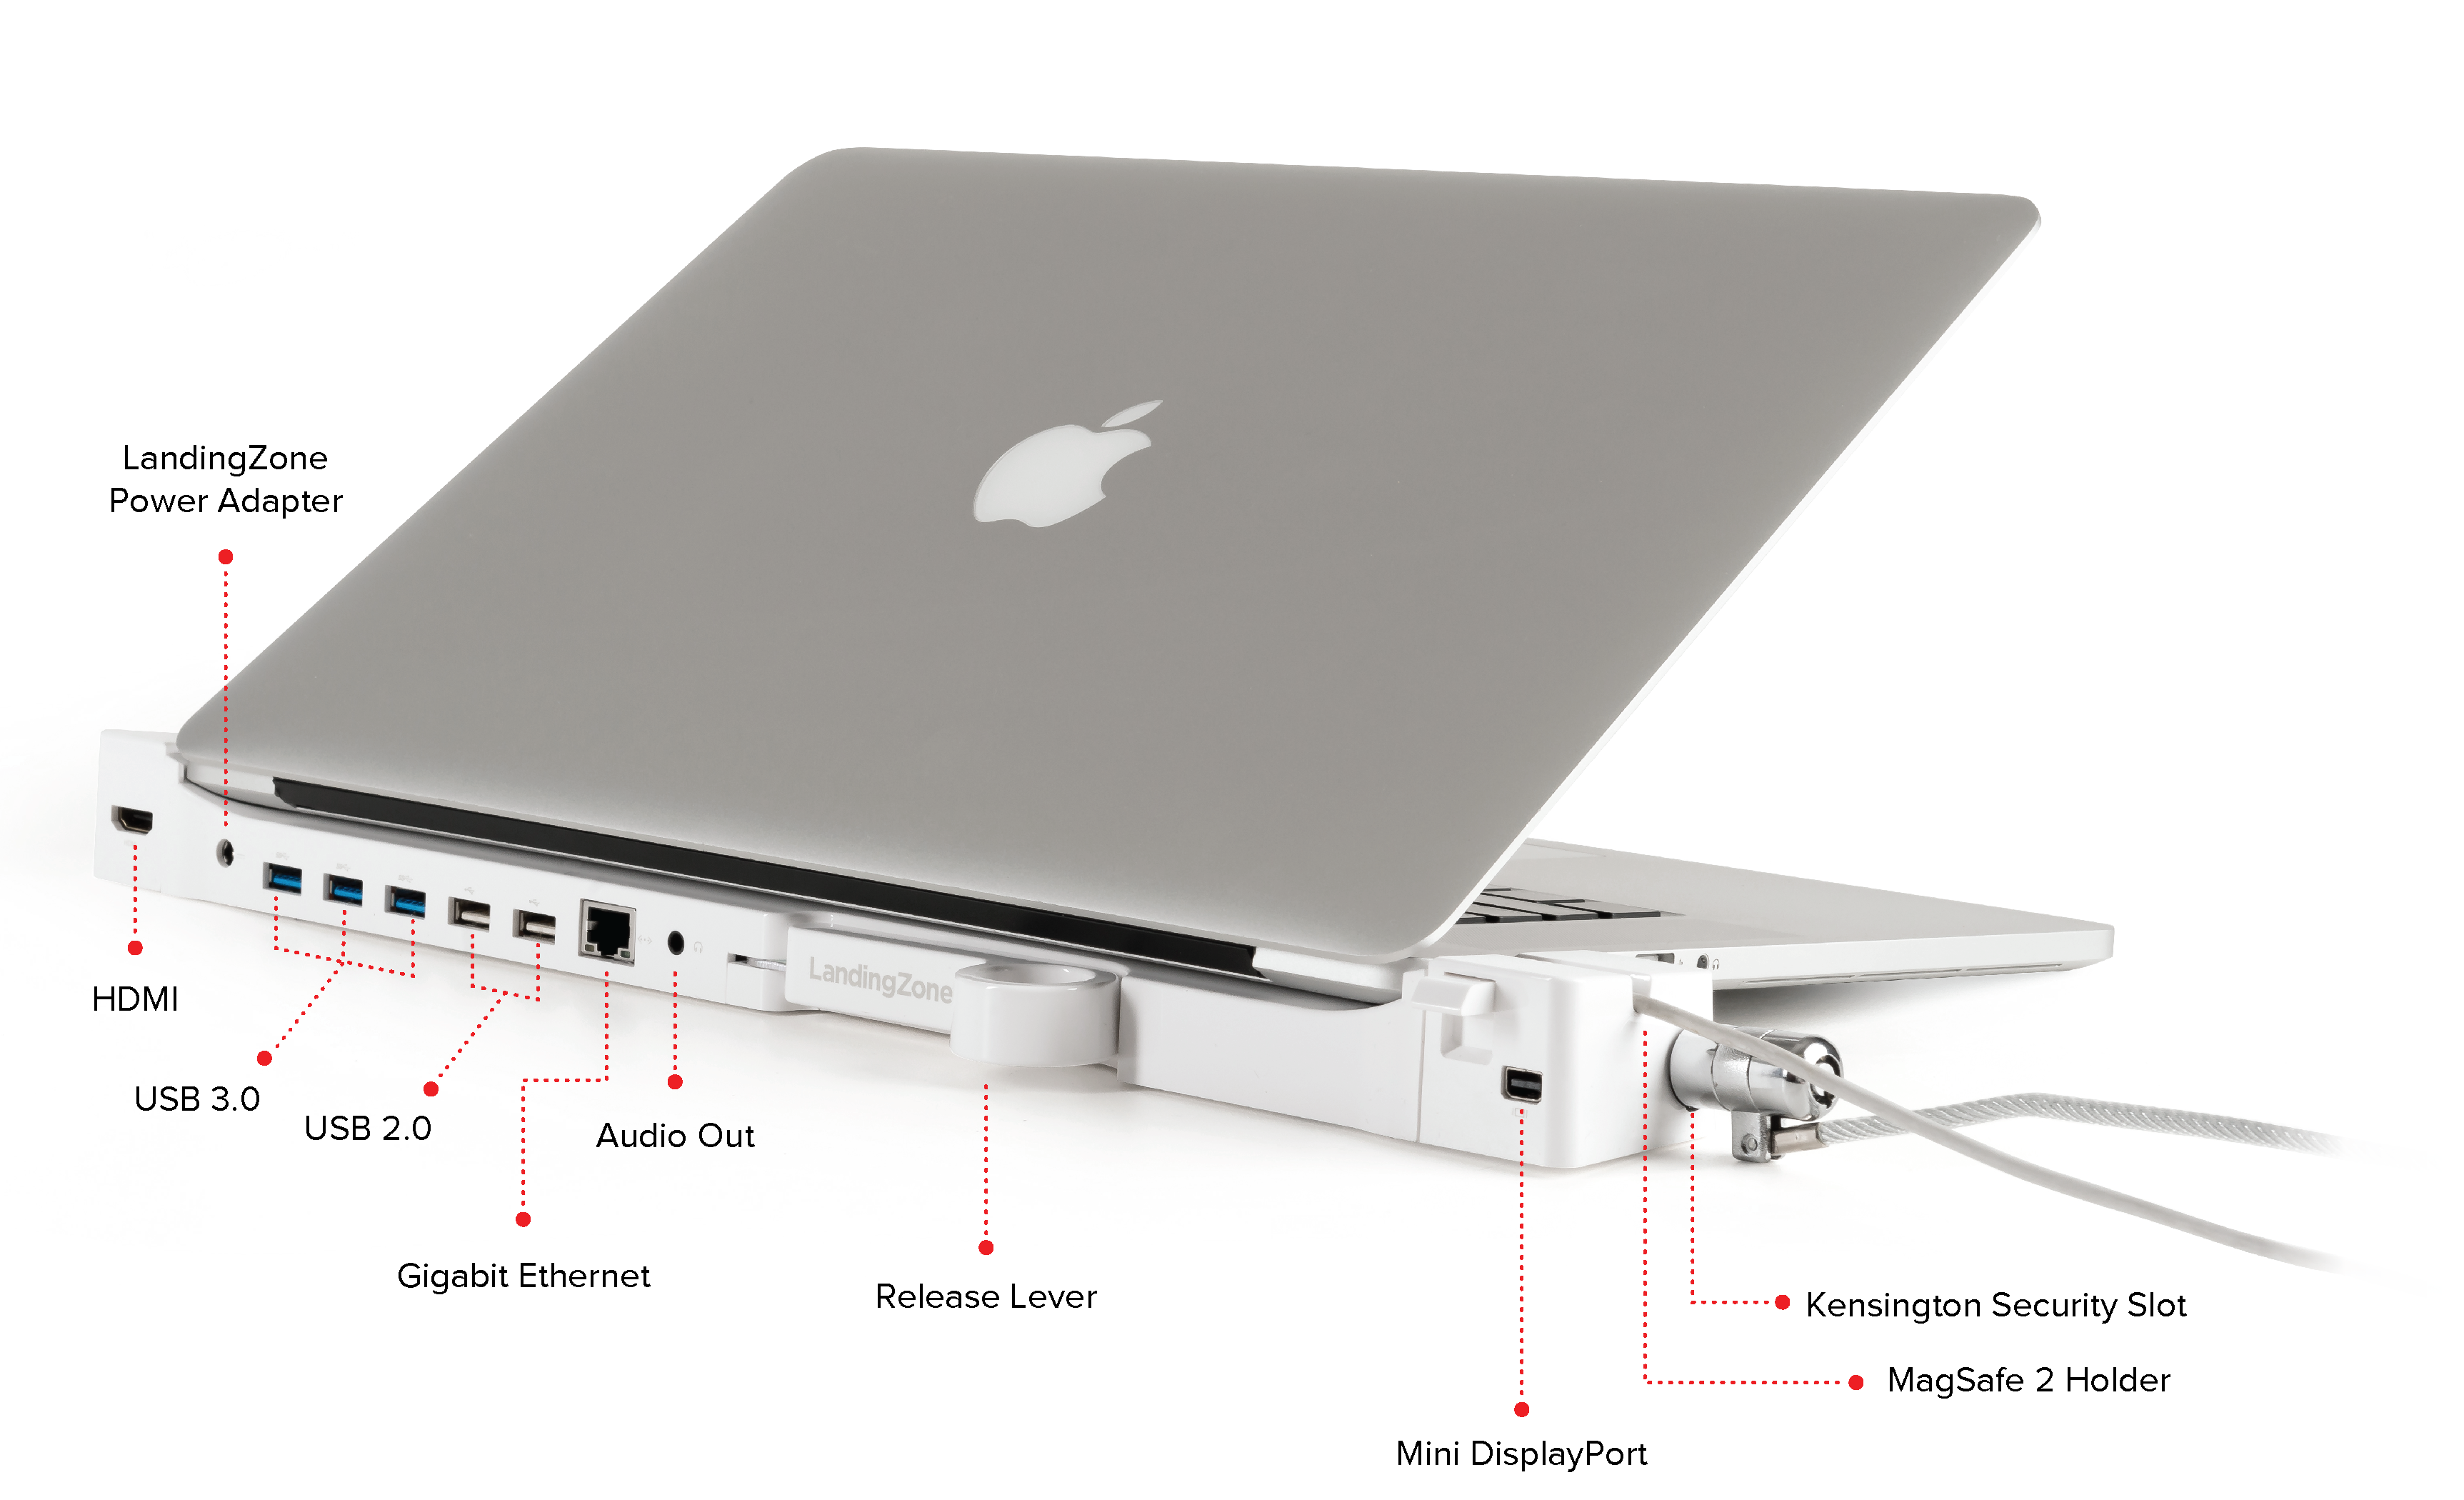 Landingzone Dock For The Macbook Pro With Retina Display